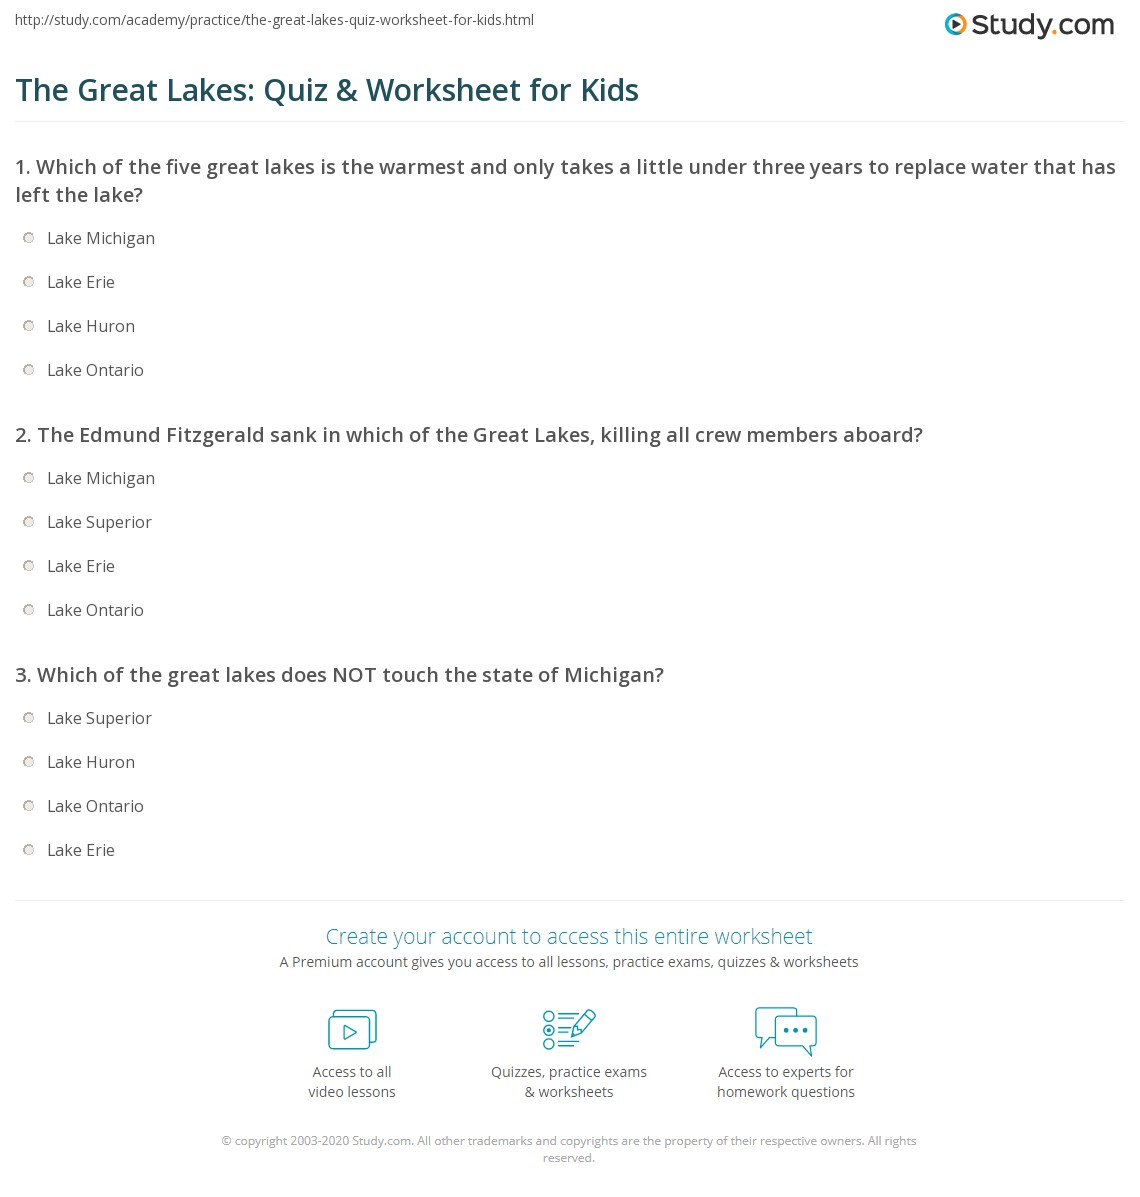 The Great Lakes: Quiz & Worksheet for Kids   Study.com